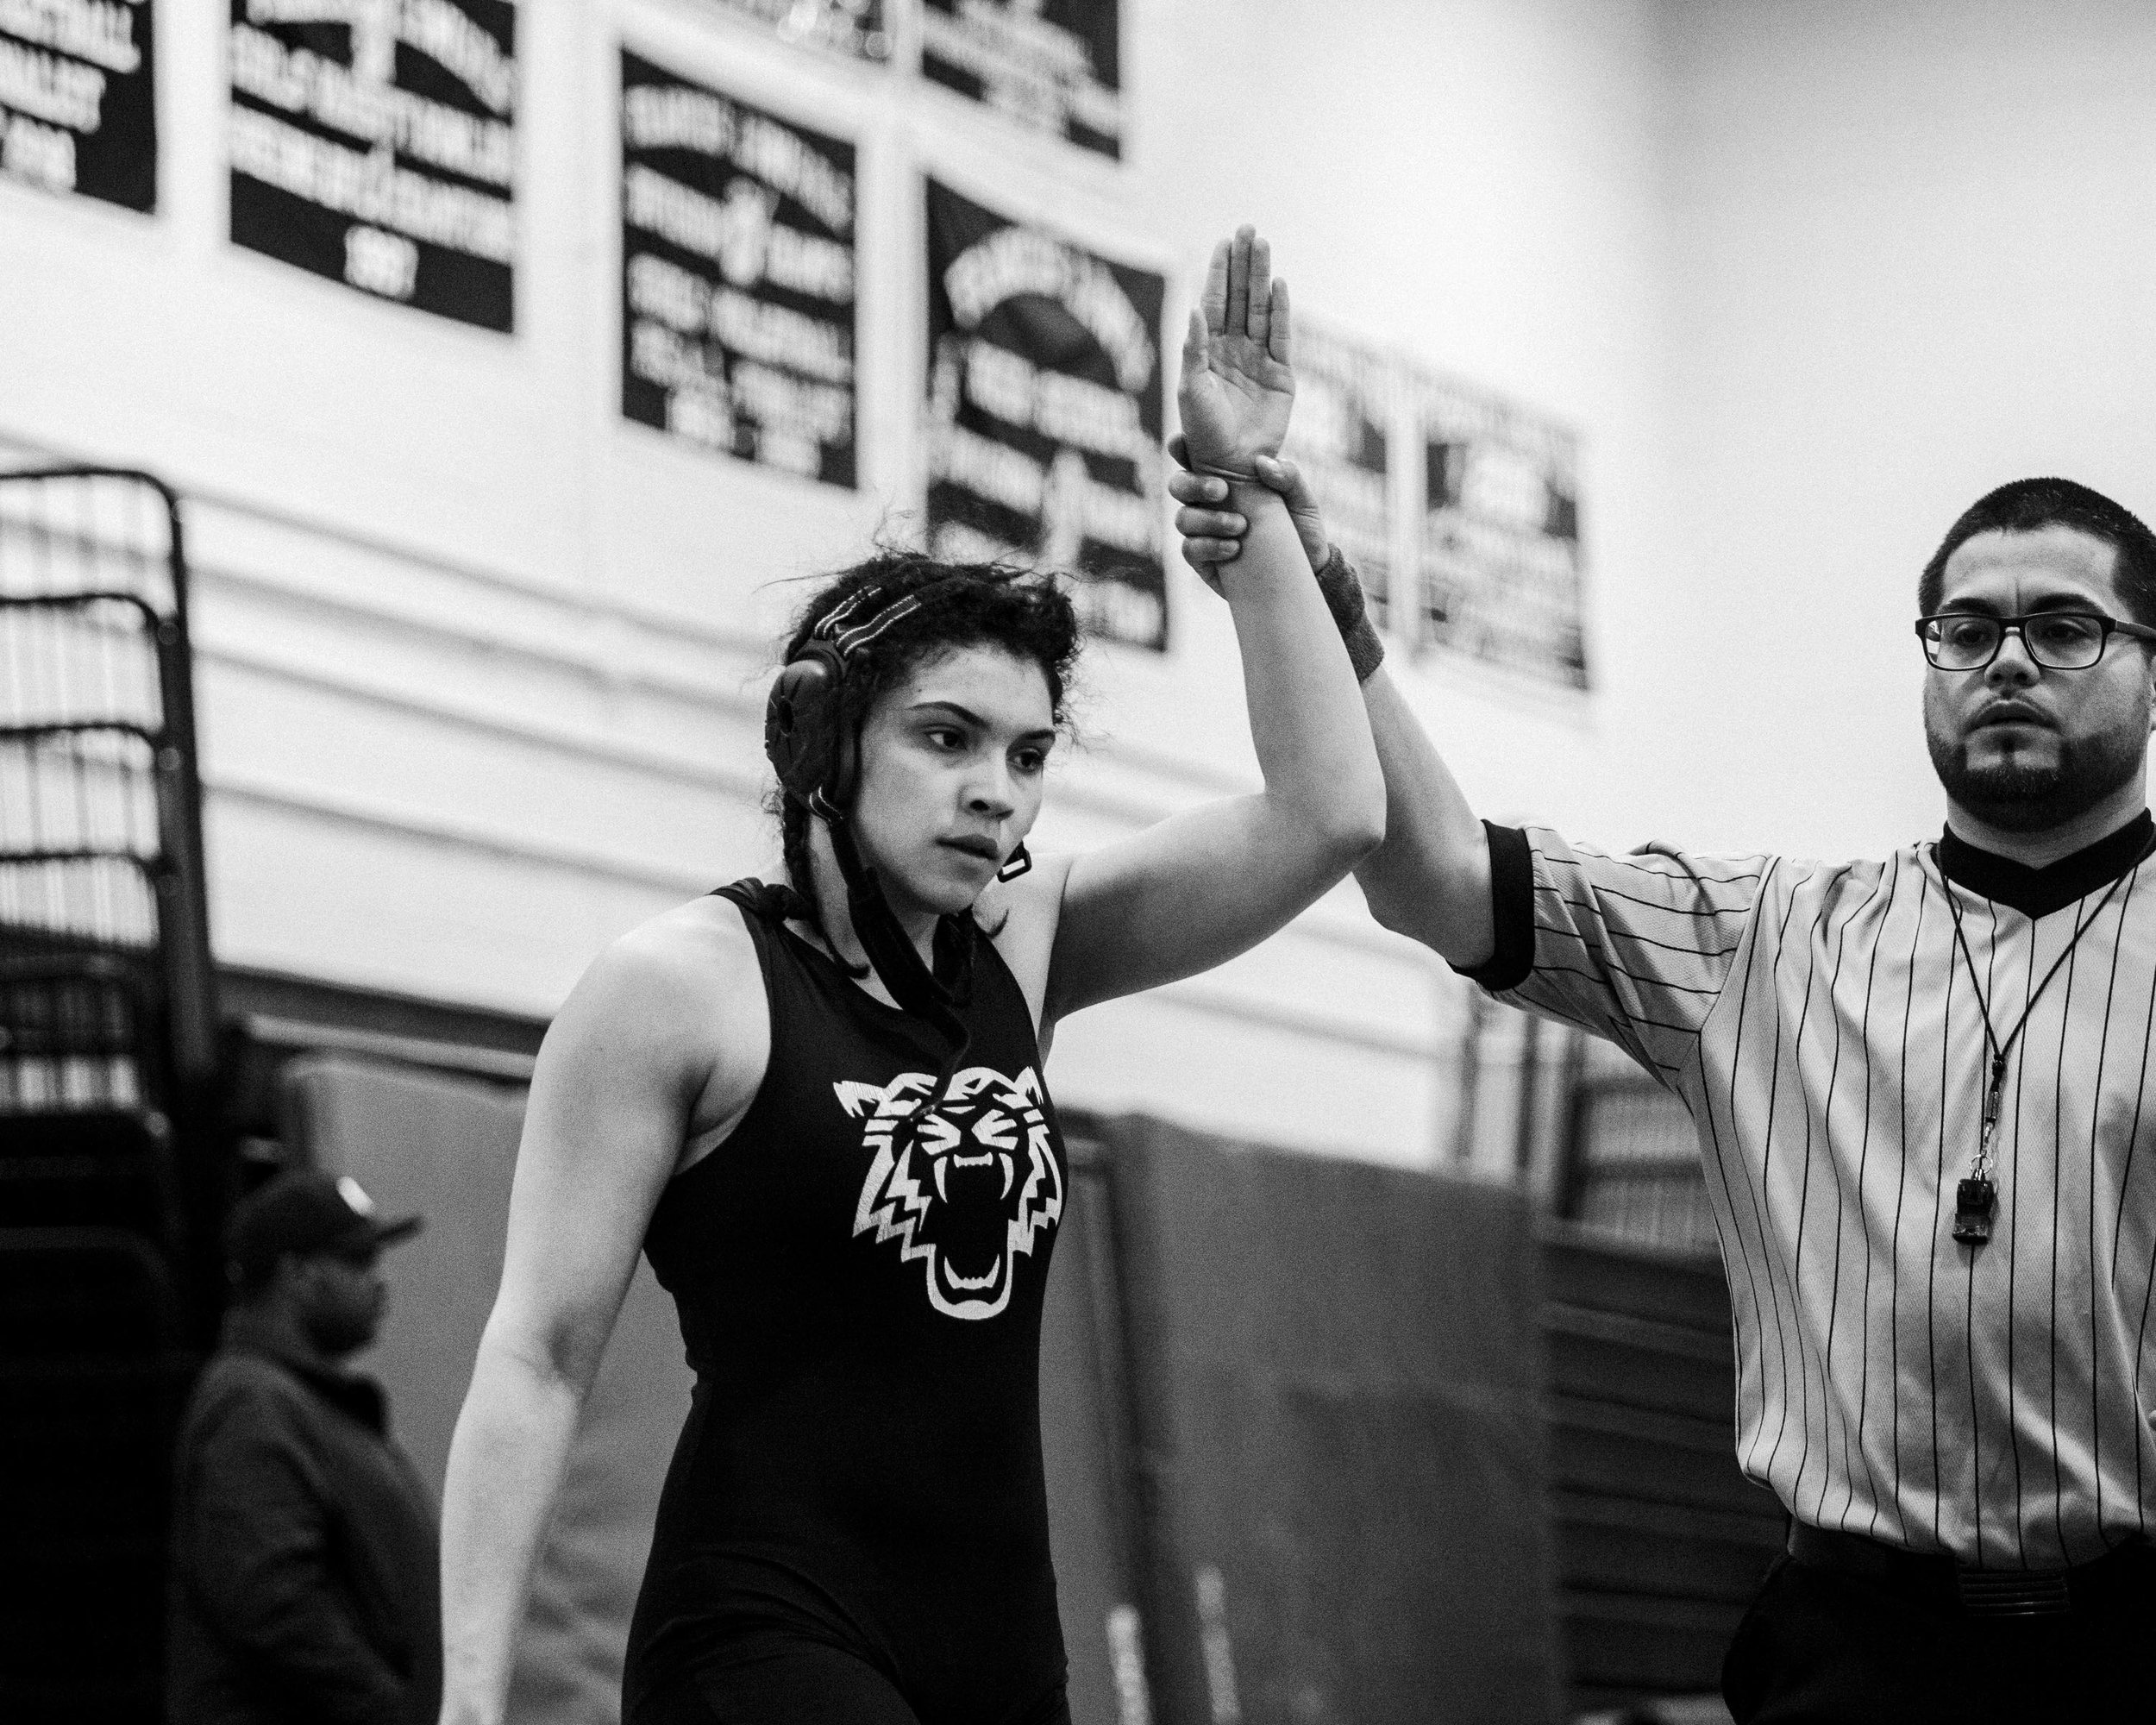 Andreina Rodriguez after winning her match at Francis Lewis Tournament, April 2016. Photographed by Laurel Golio.